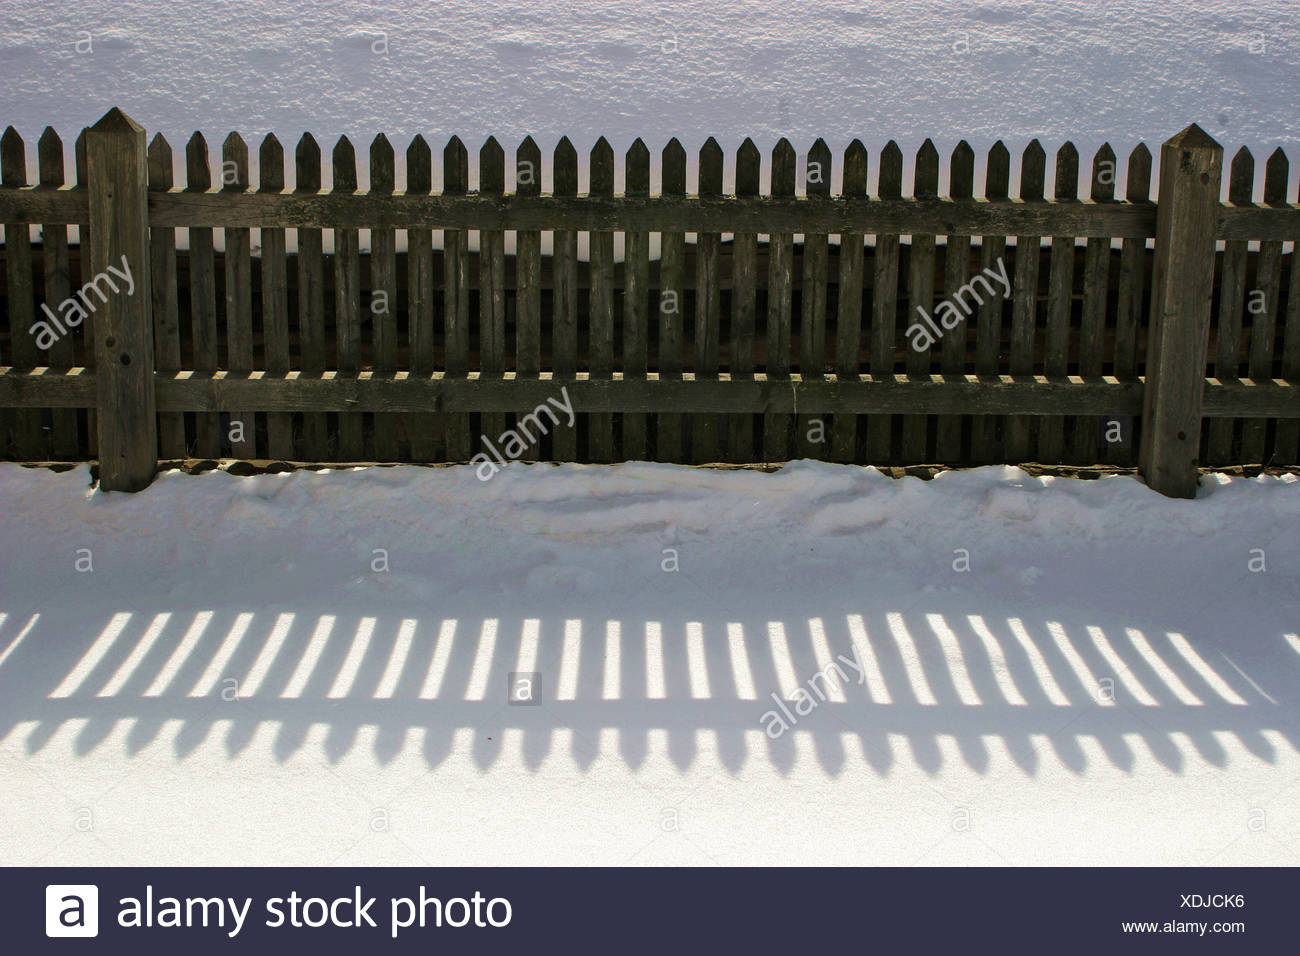 Wood-fence and shadow in snow - Stock Image